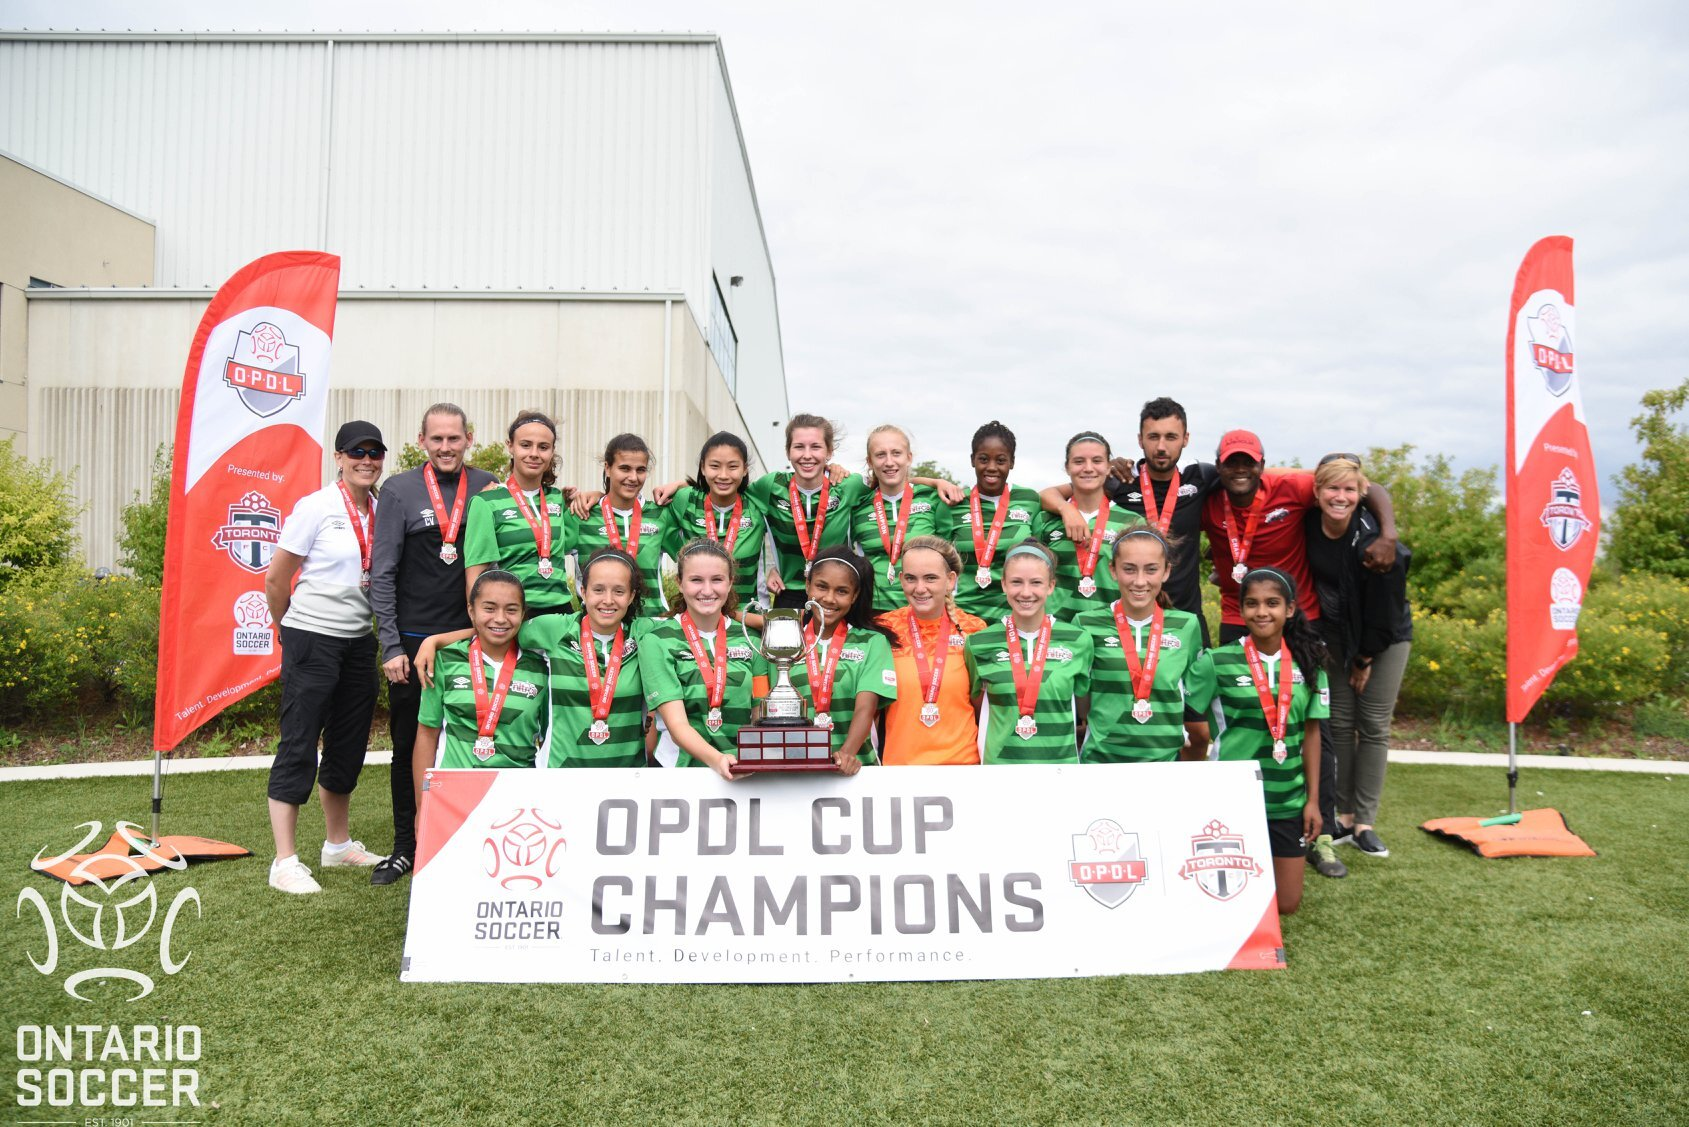 dd7ef1cfdbb SILVER LINING...the Nitros U17s girls and technical staff with the OPDL Cup  Picture courtesy of Ontario Soccer